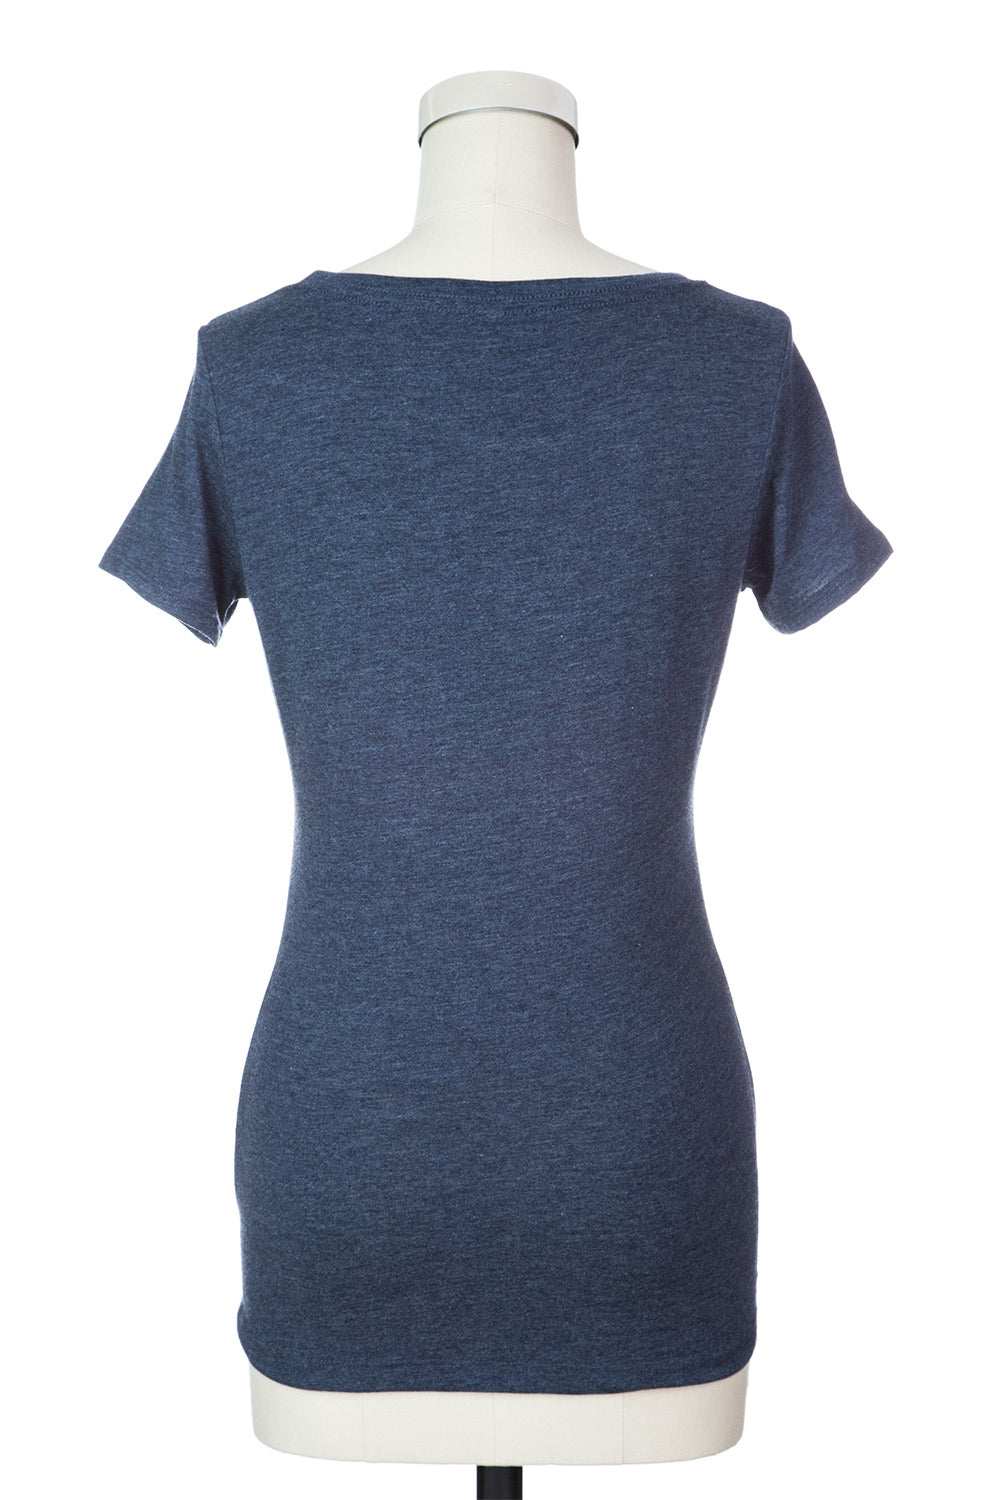 Type 2 Antique Navy Soft-T